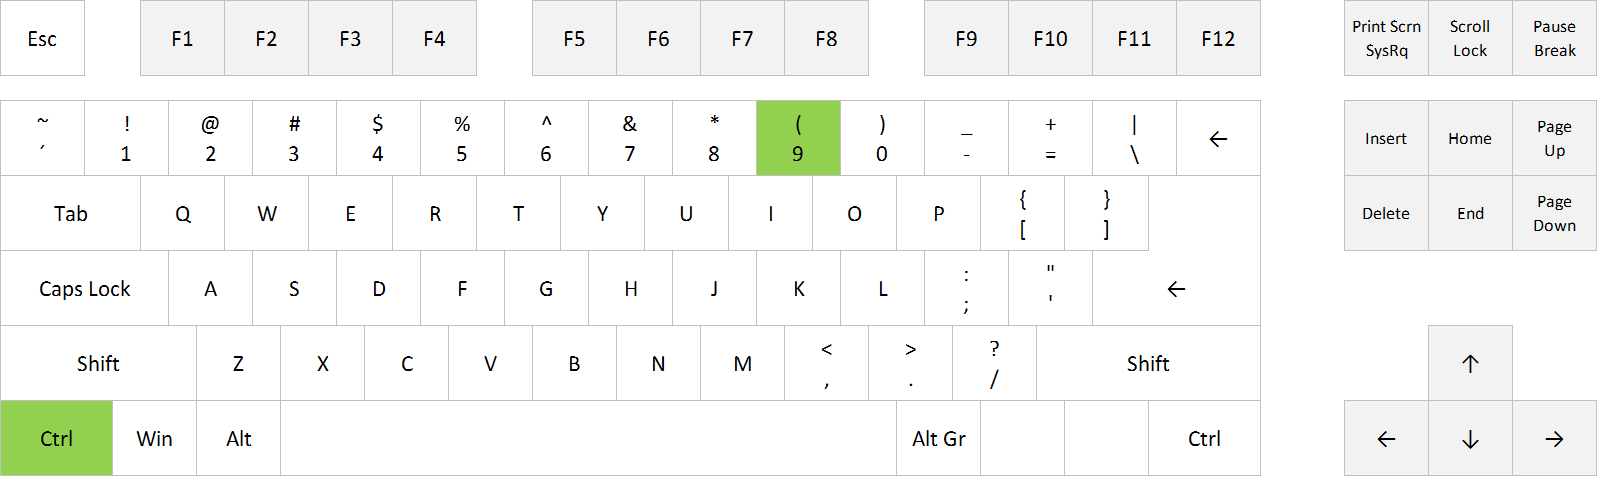 Hide Row in Excel: Ctrl+9